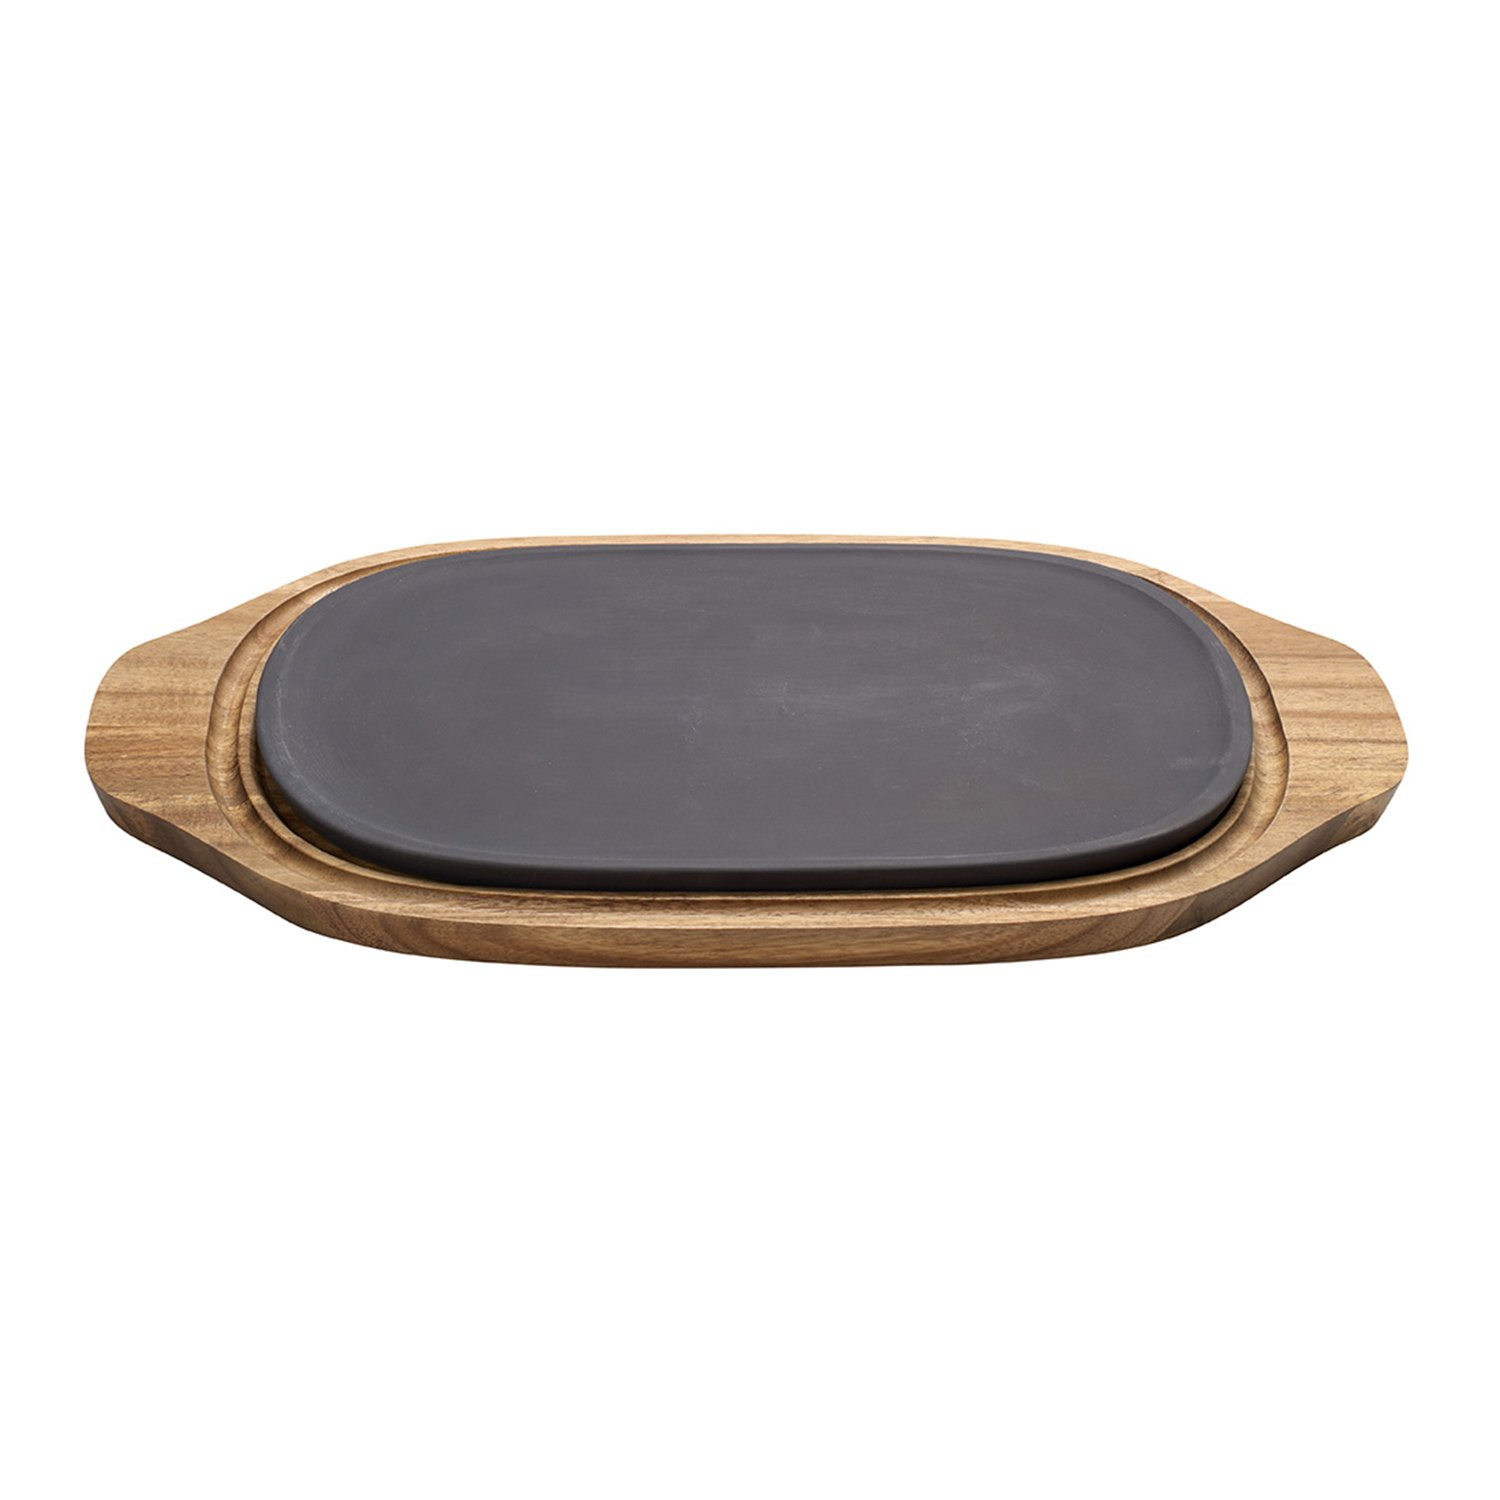 BBQ Passion  Hot/ Cool Plate 2 Piece Set by Villeroy & Boch - Premium Porcelain Plate and Acacia Wood Tray - Dishwasher and Microwave Safe Plate - 12.5 x 8.25 Inches